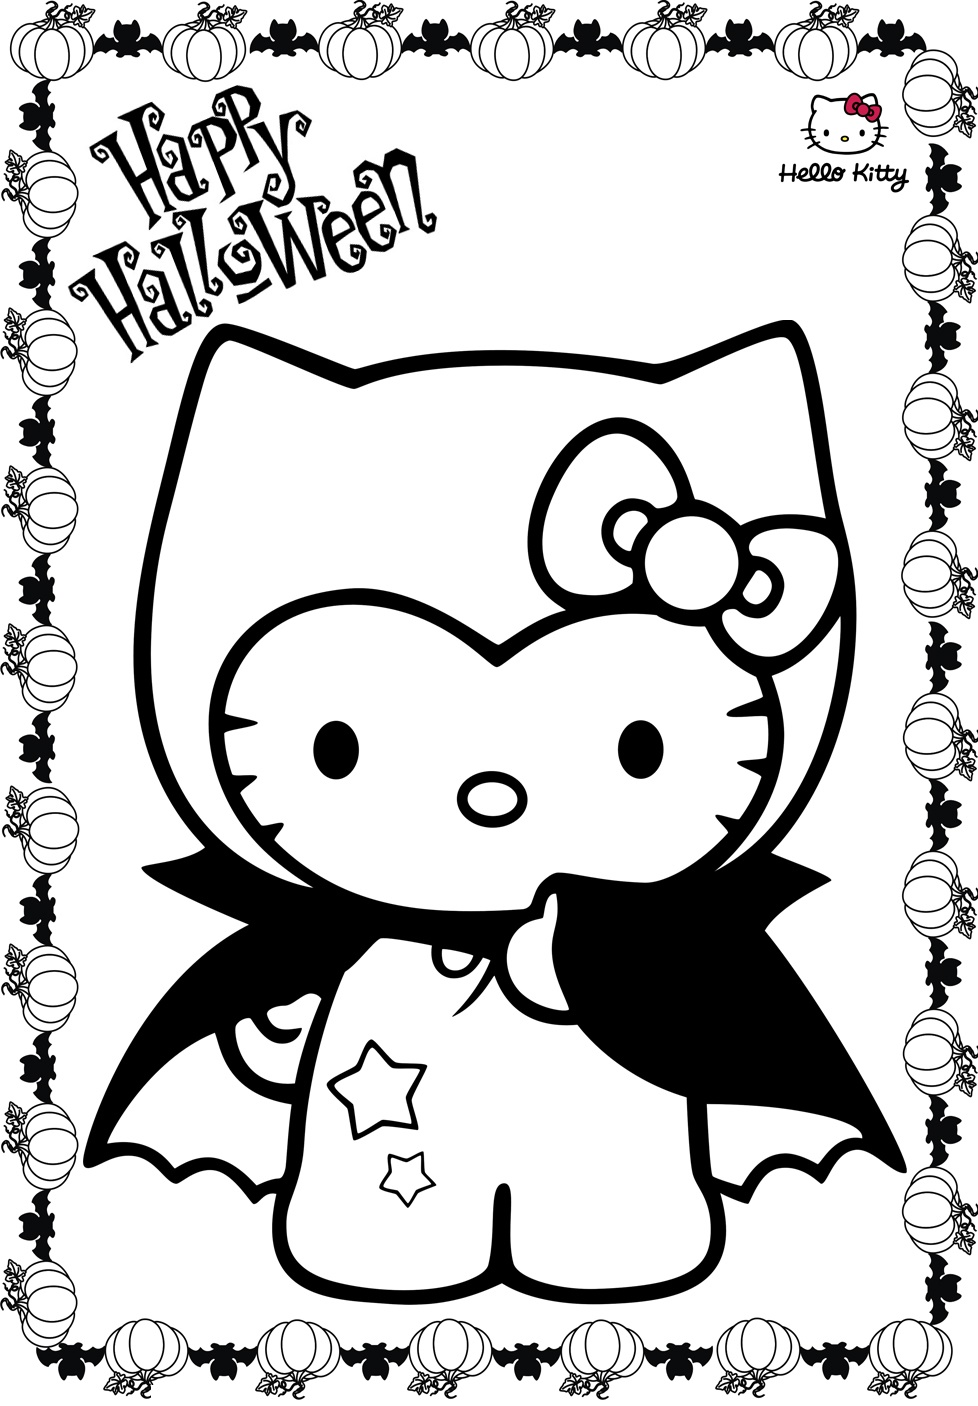 Hello Kitty Halloween Coloring Pages Vampire